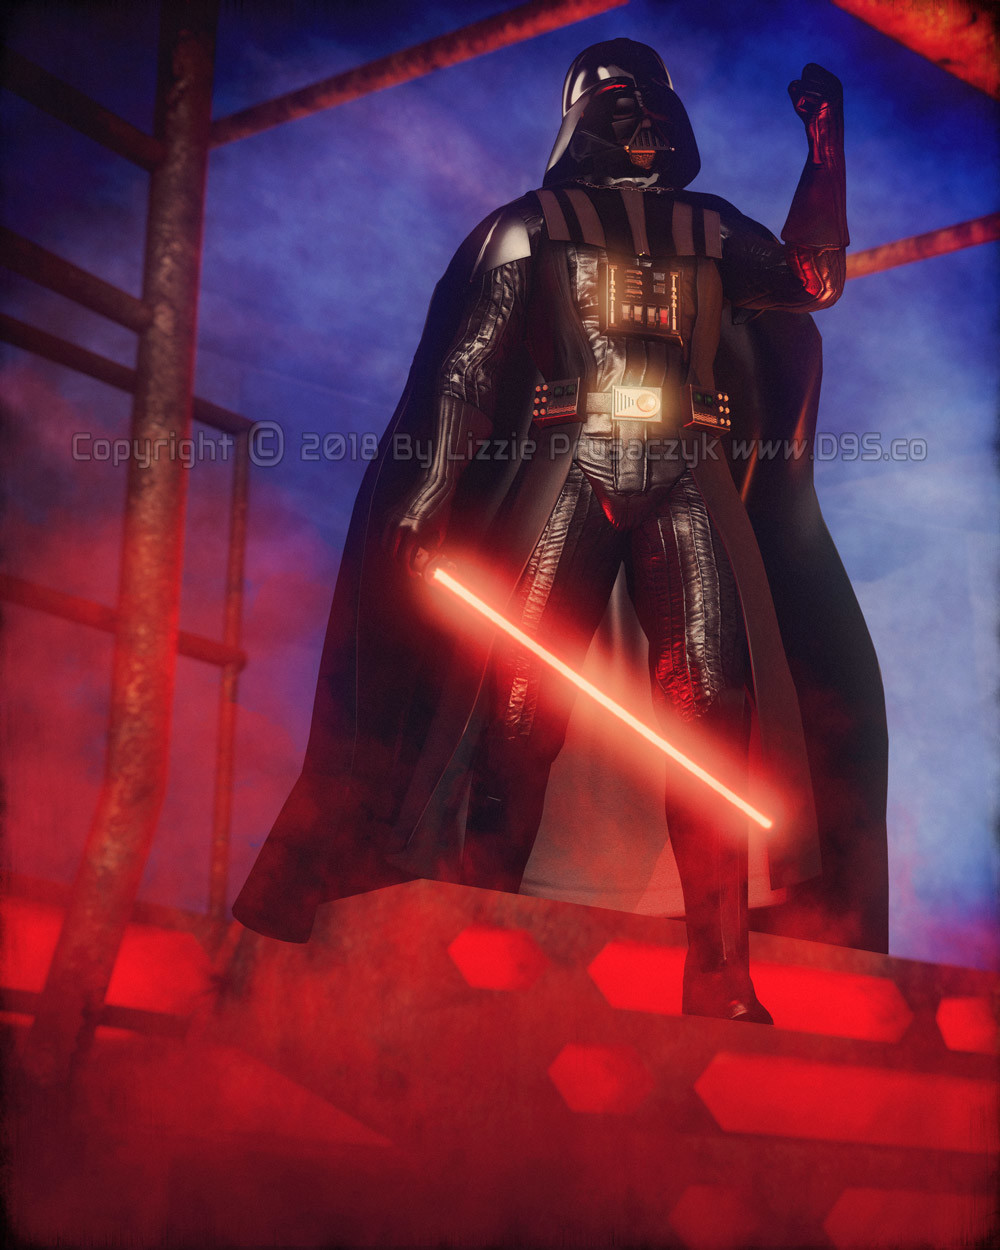 Darth Vader, with his lightsaber drawn, enters the carbonite freezing chamber to confront Luke in the Cloud City on Bespin.